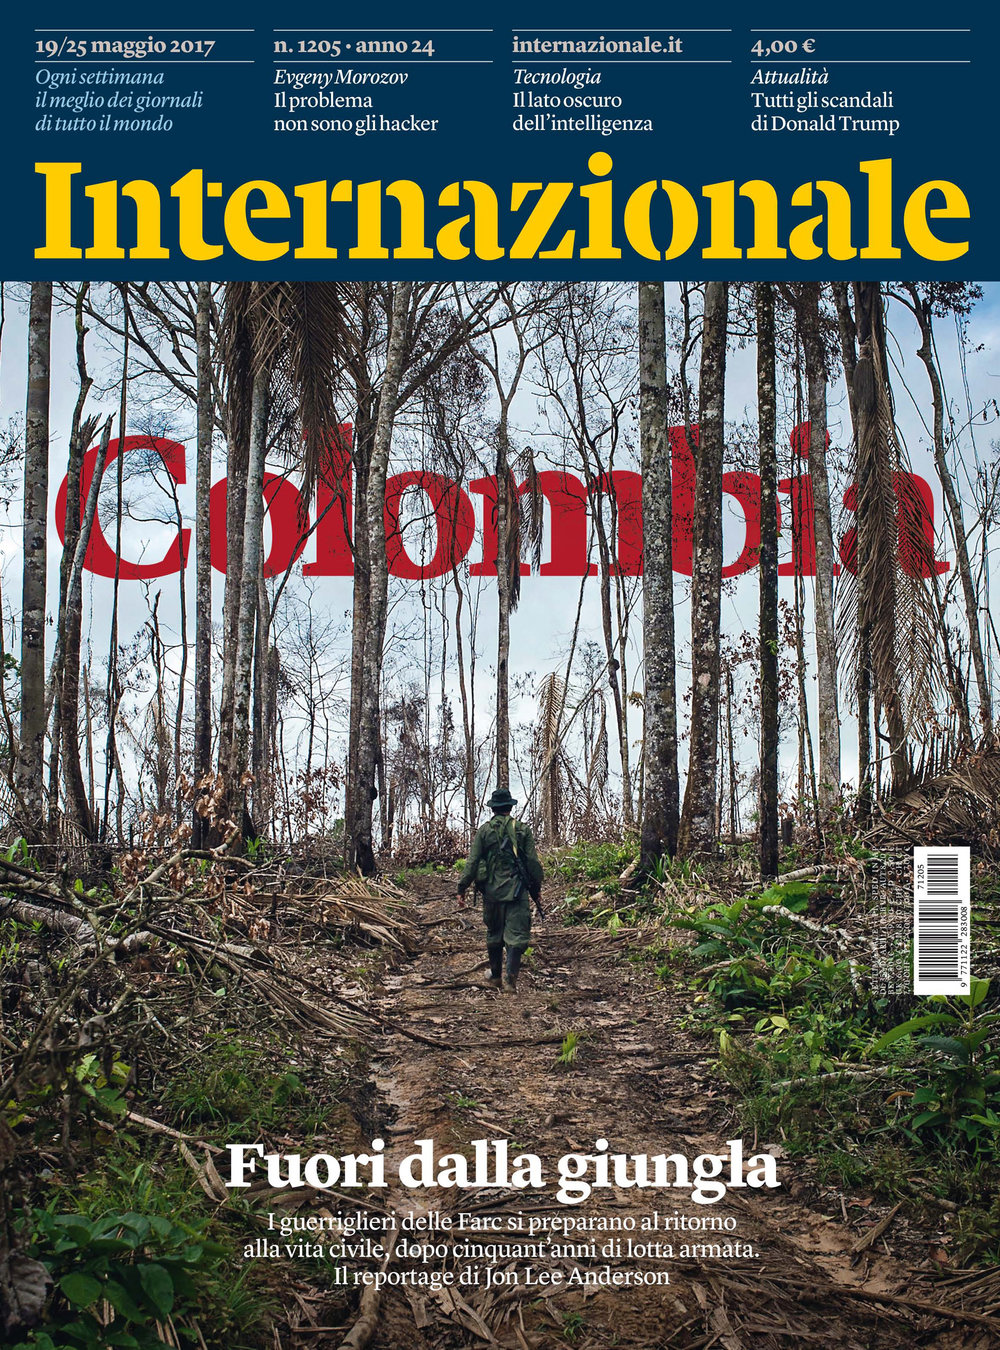 2017-05_Internazonale_Cover.jpg